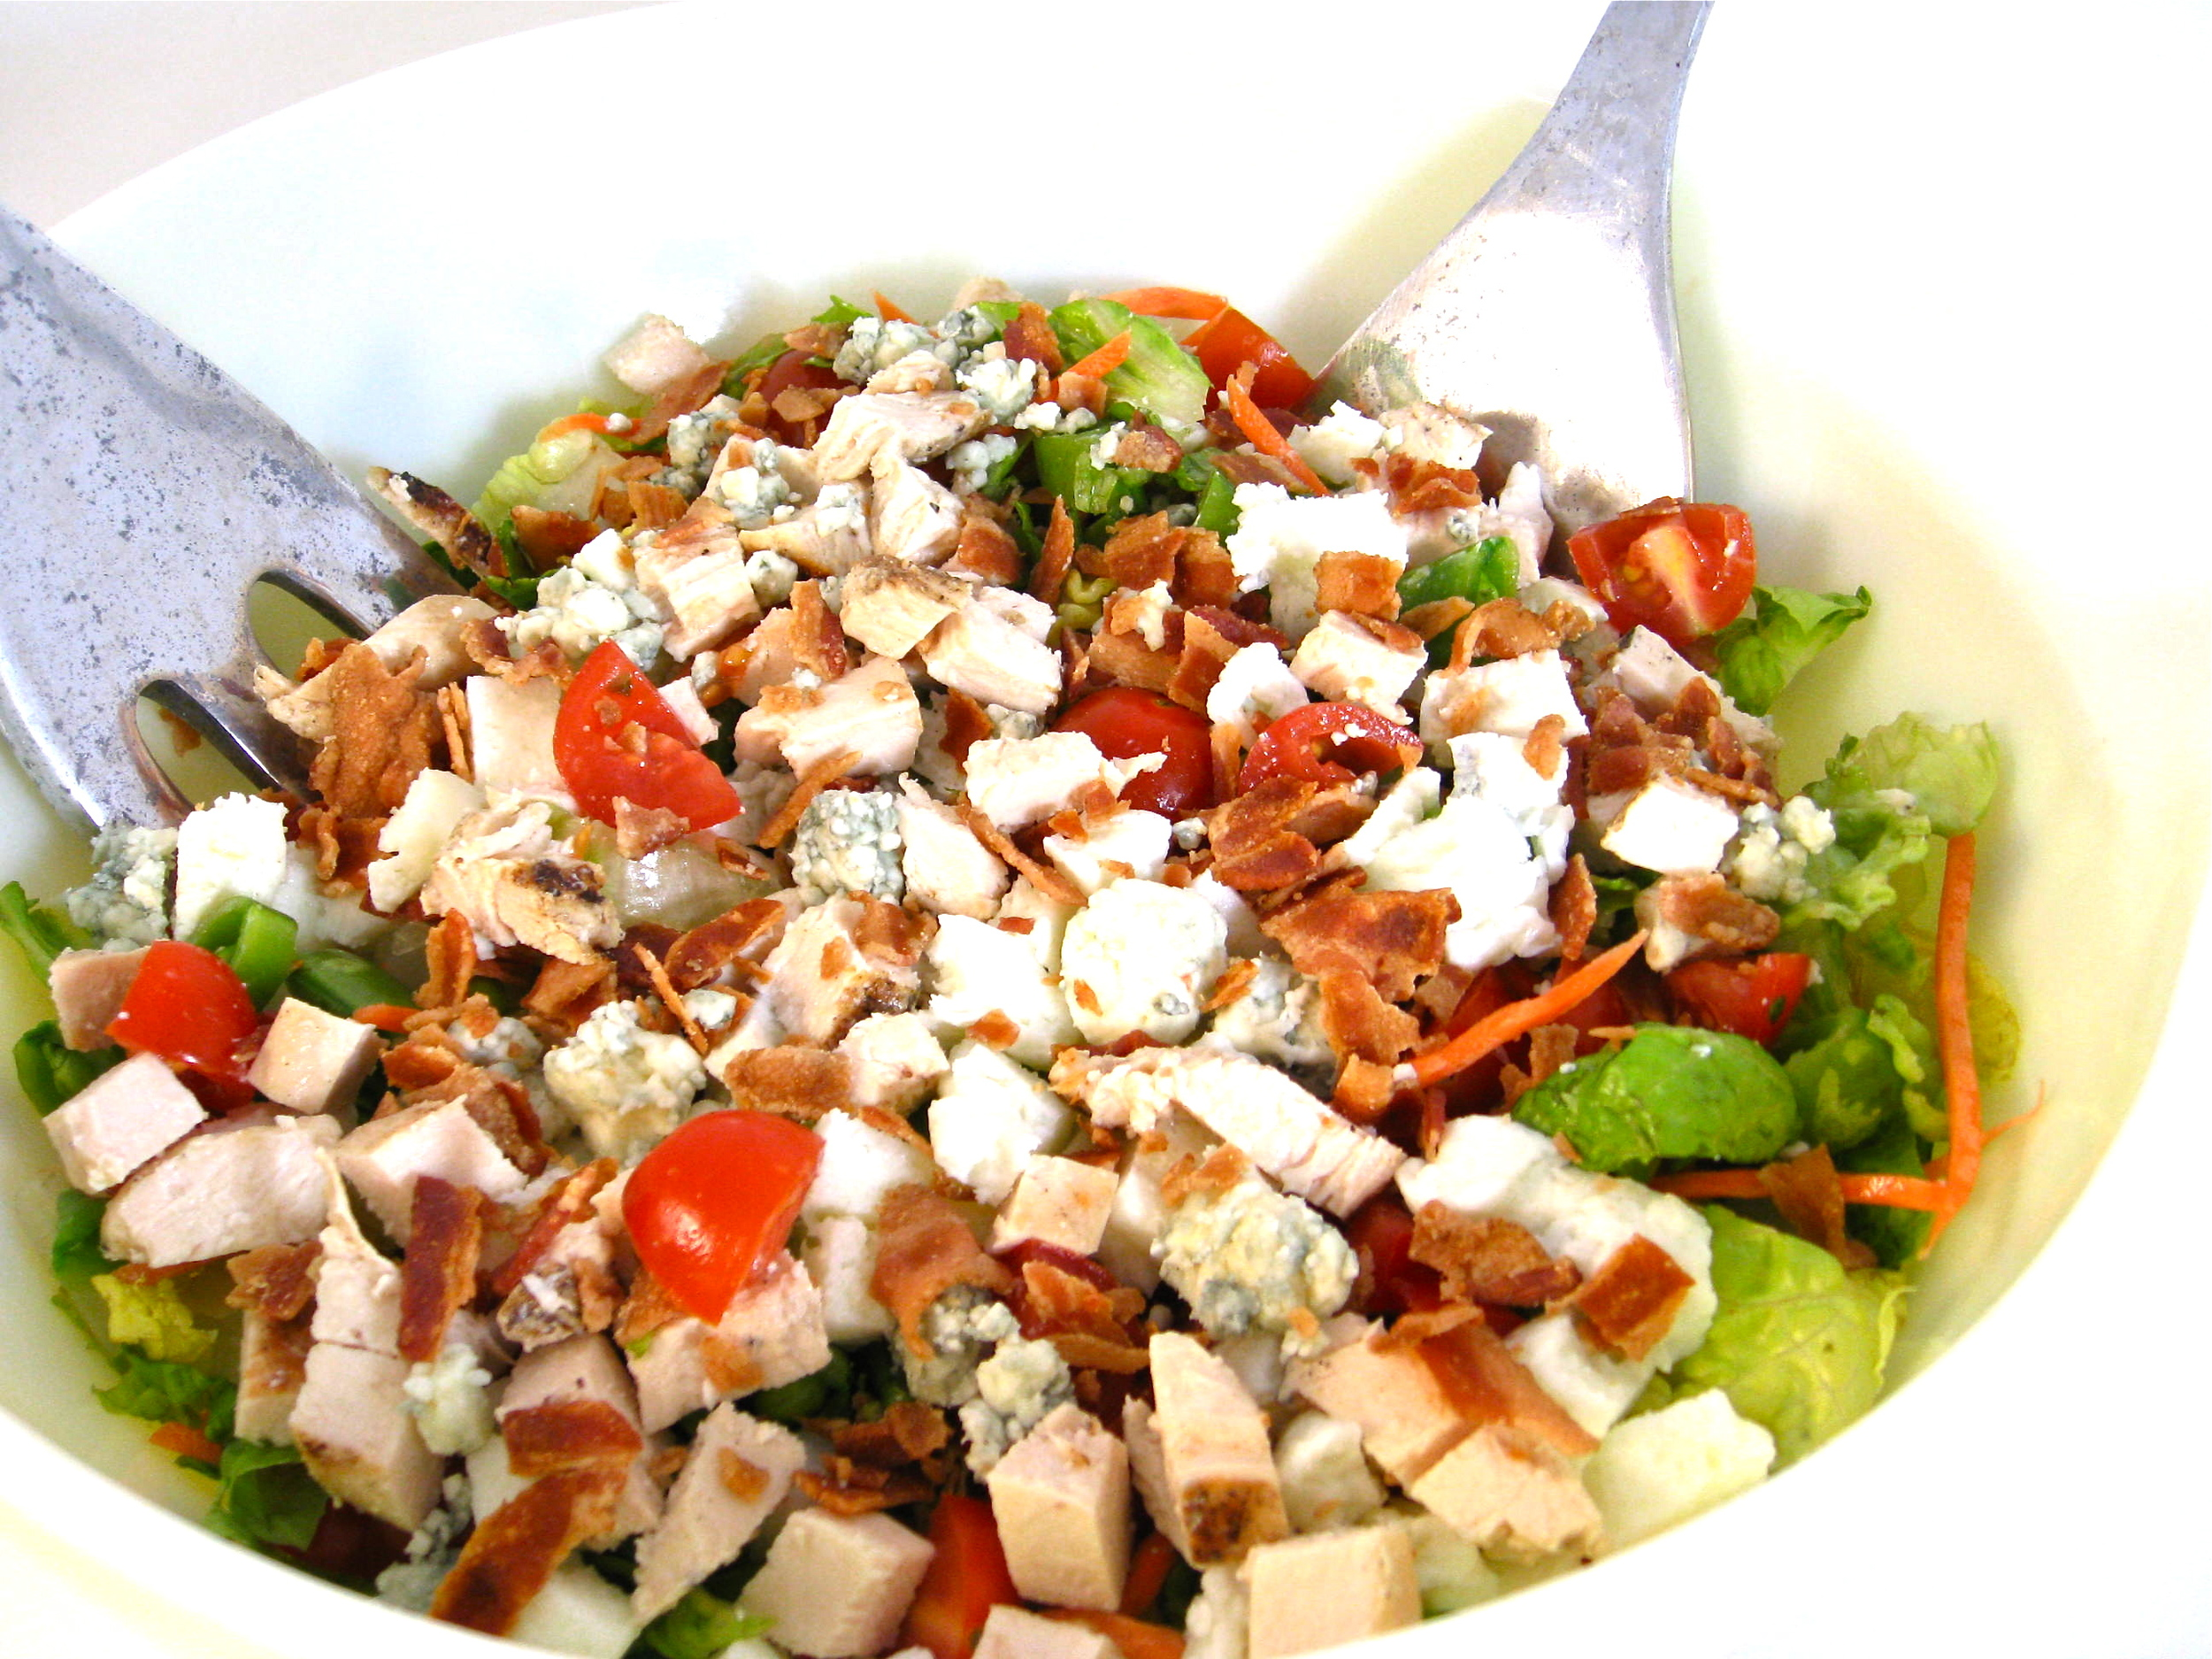 classic-cobb-salad-photo1.jpg